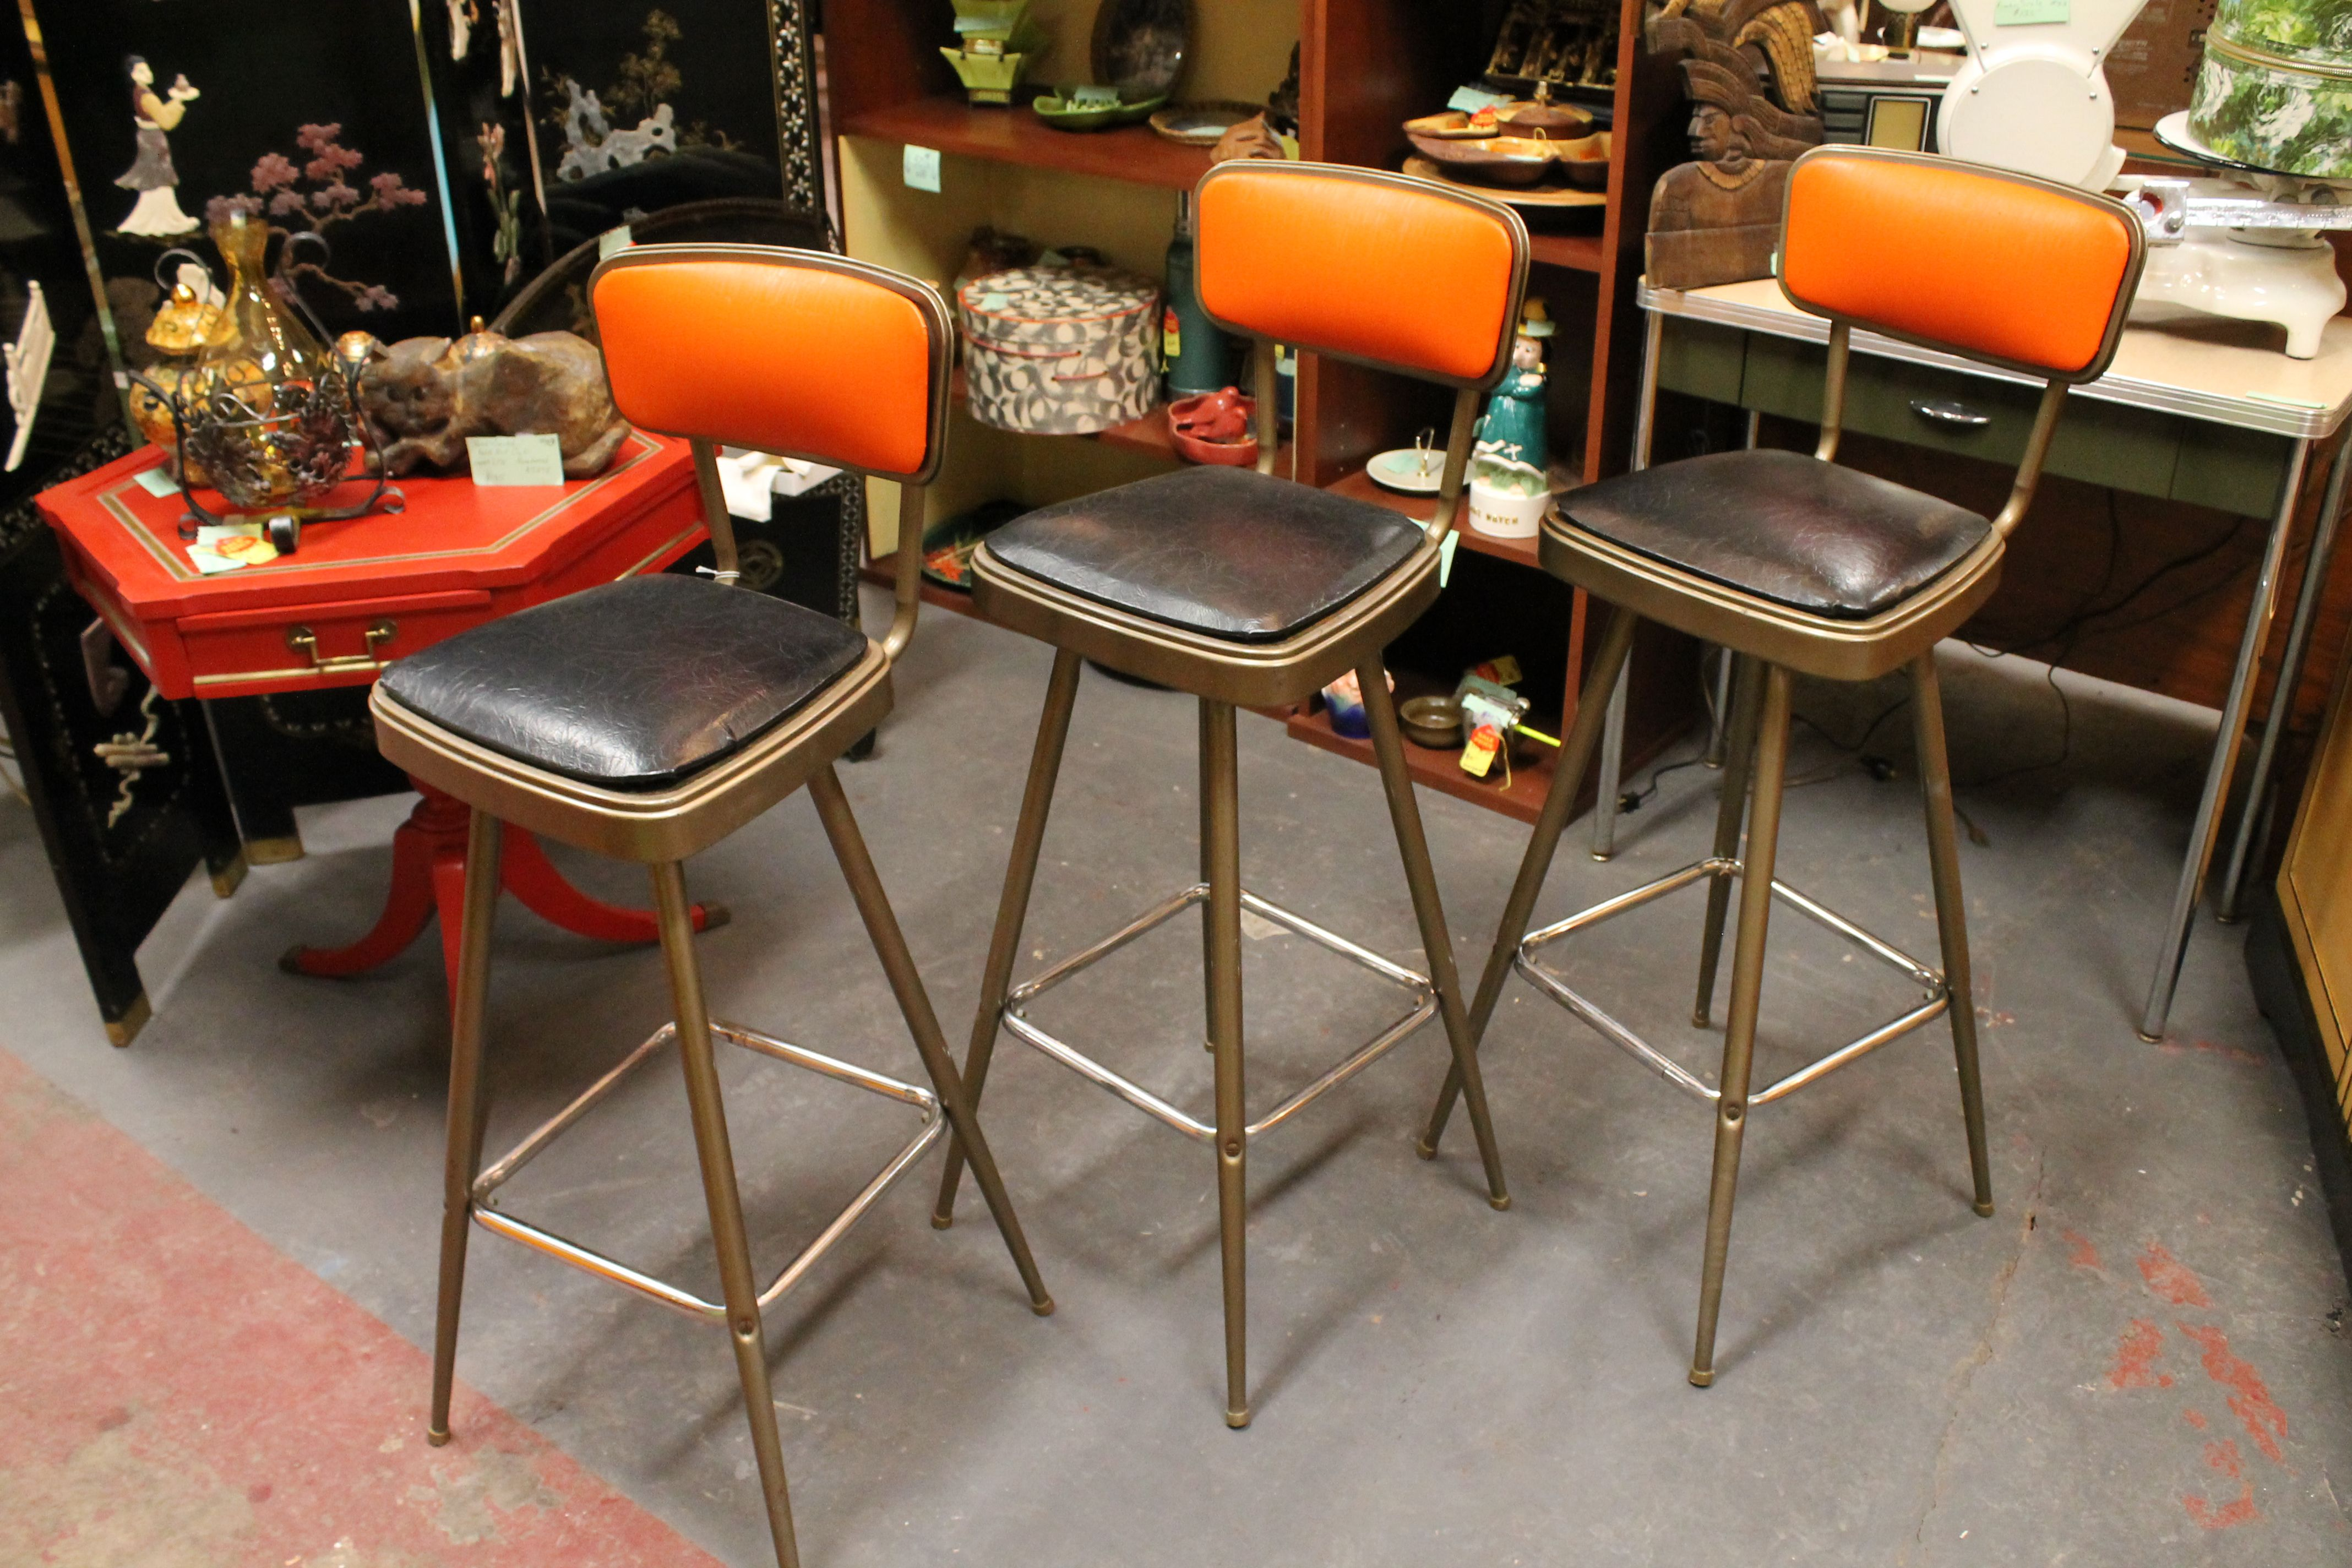 Sold 115 Set Three Vintage Mid Century Modern Bar Stools C 1960 Cute Bar Stools Wi Mid Century Modern Bar Mid Century Modern Furniture Modern Bar Stools